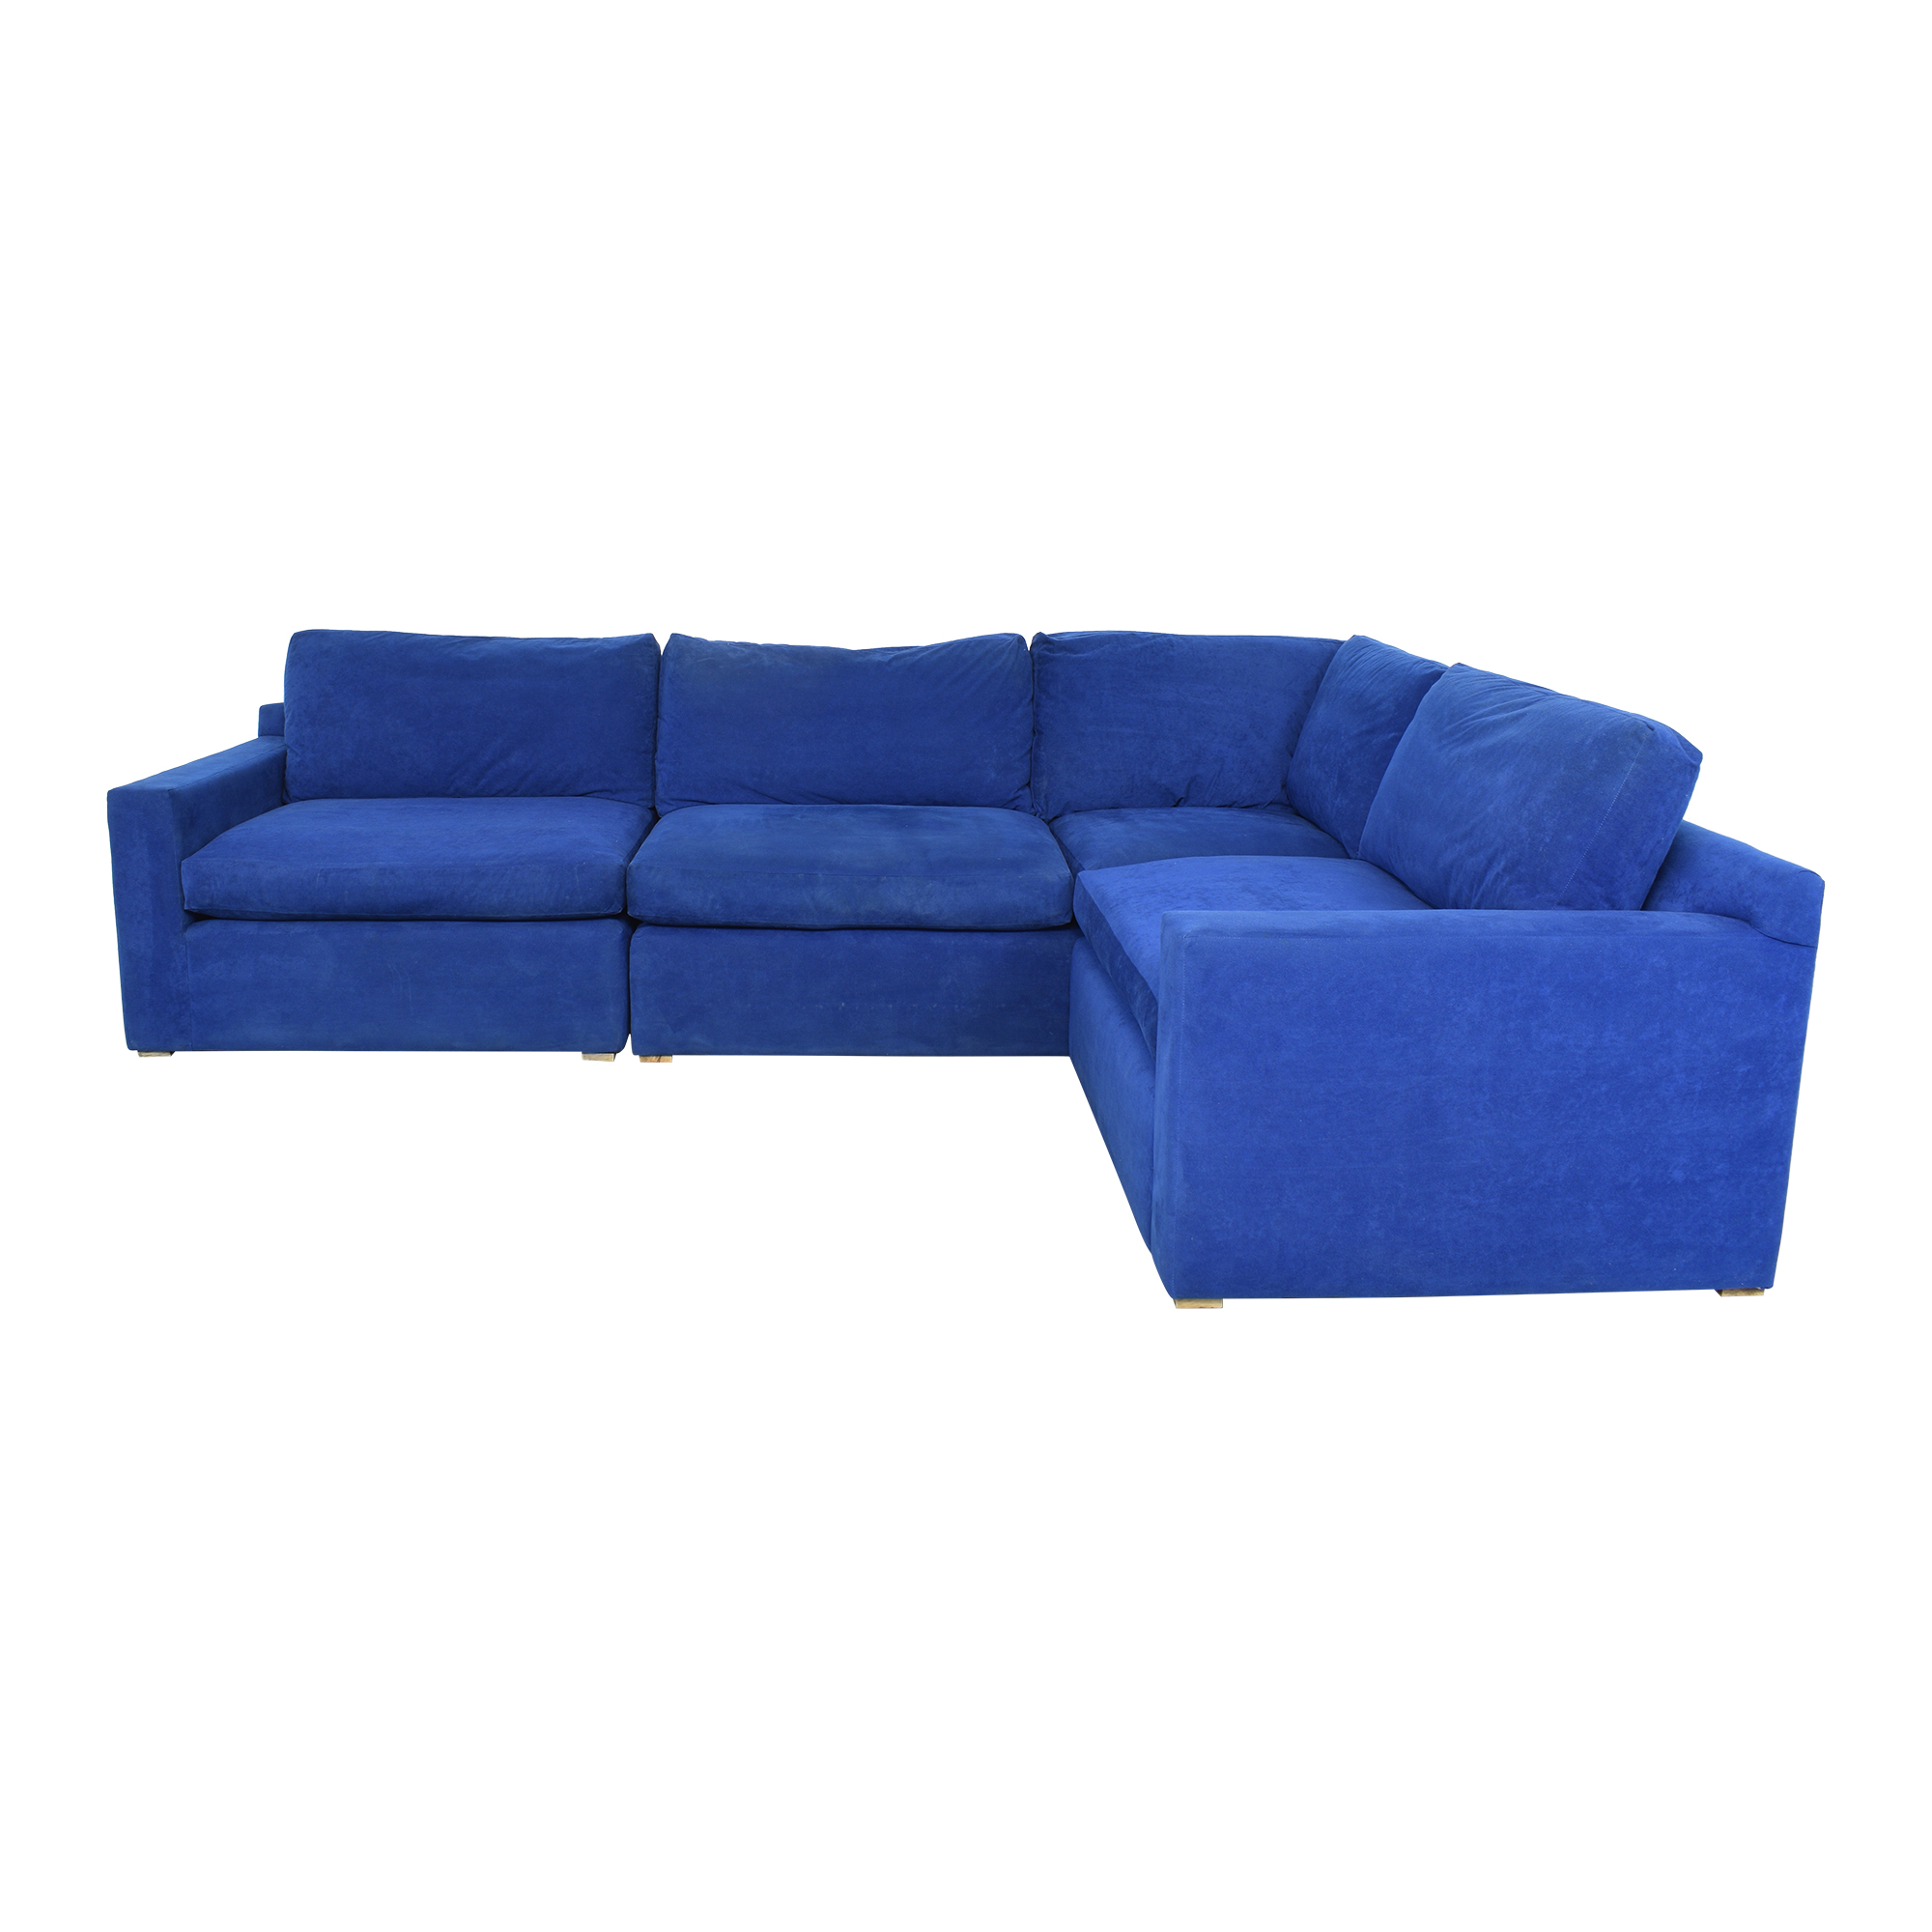 Custom Track Arm L-Shaped Sectional Sofa ma